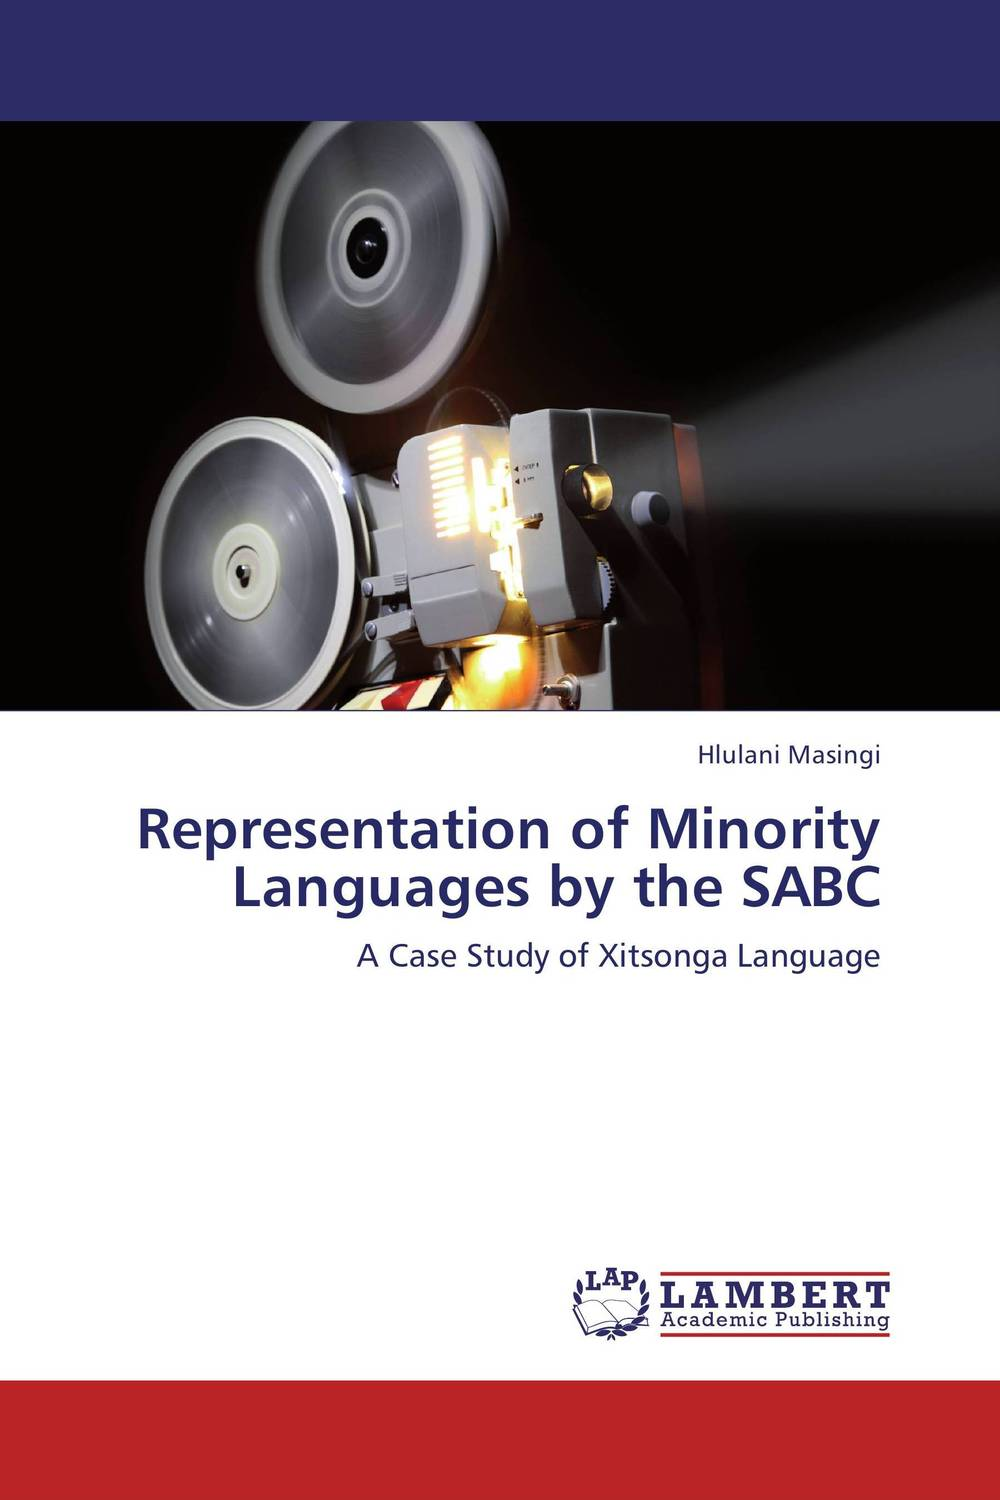 Representation of Minority Languages by the SABC